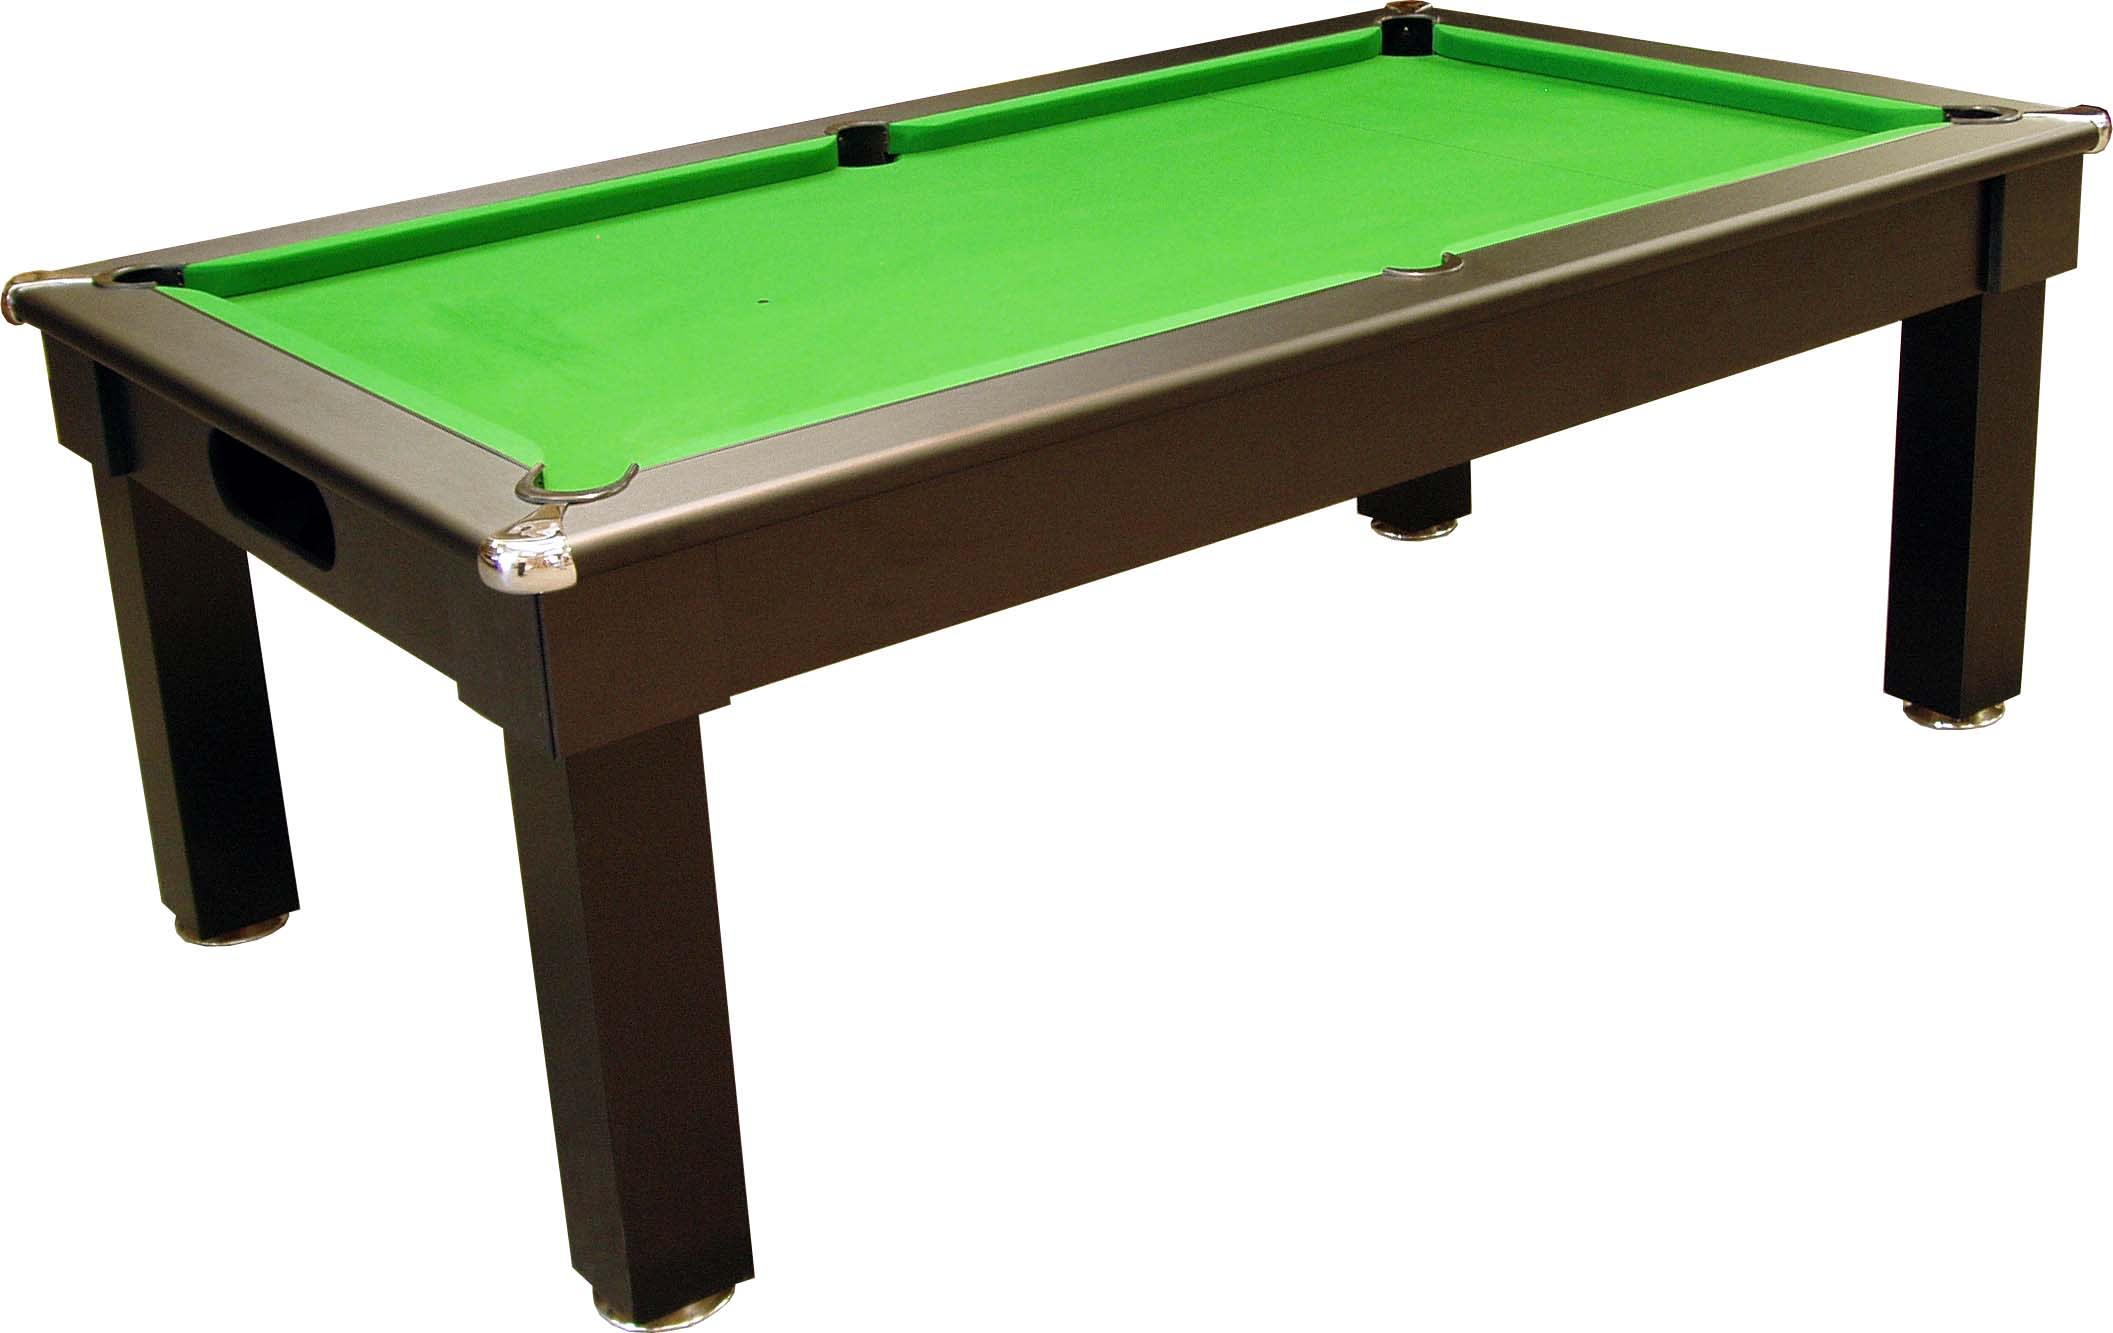 An image of Signature Yale American Pool Dining Table: All Finishes - 7ft